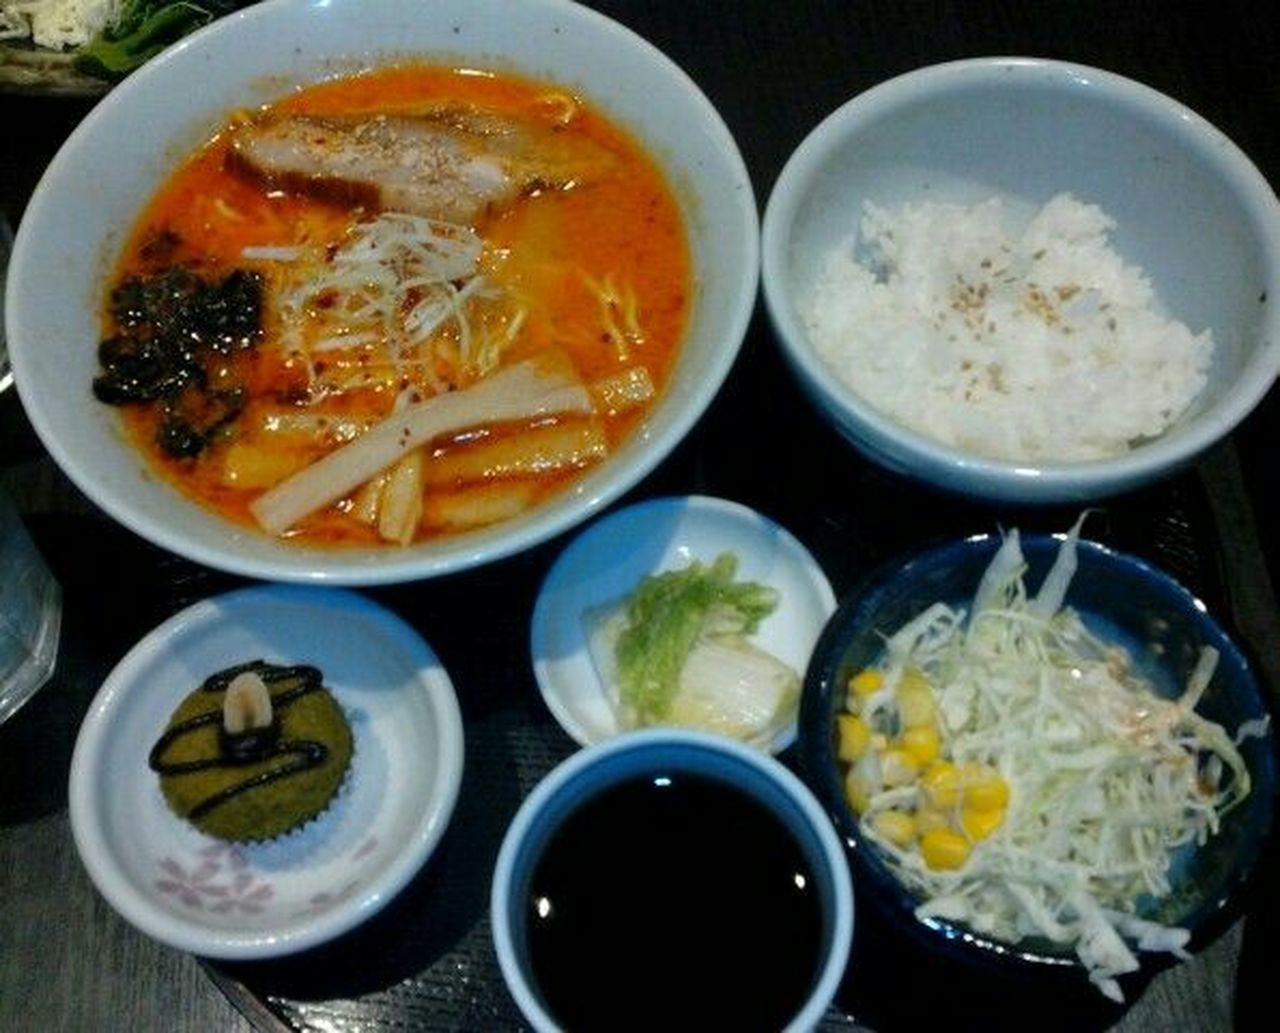 bowl, food and drink, food, healthy eating, soup, ready-to-eat, no people, freshness, seafood, indoors, plate, lunch, close-up, healthy lifestyle, egg yolk, day